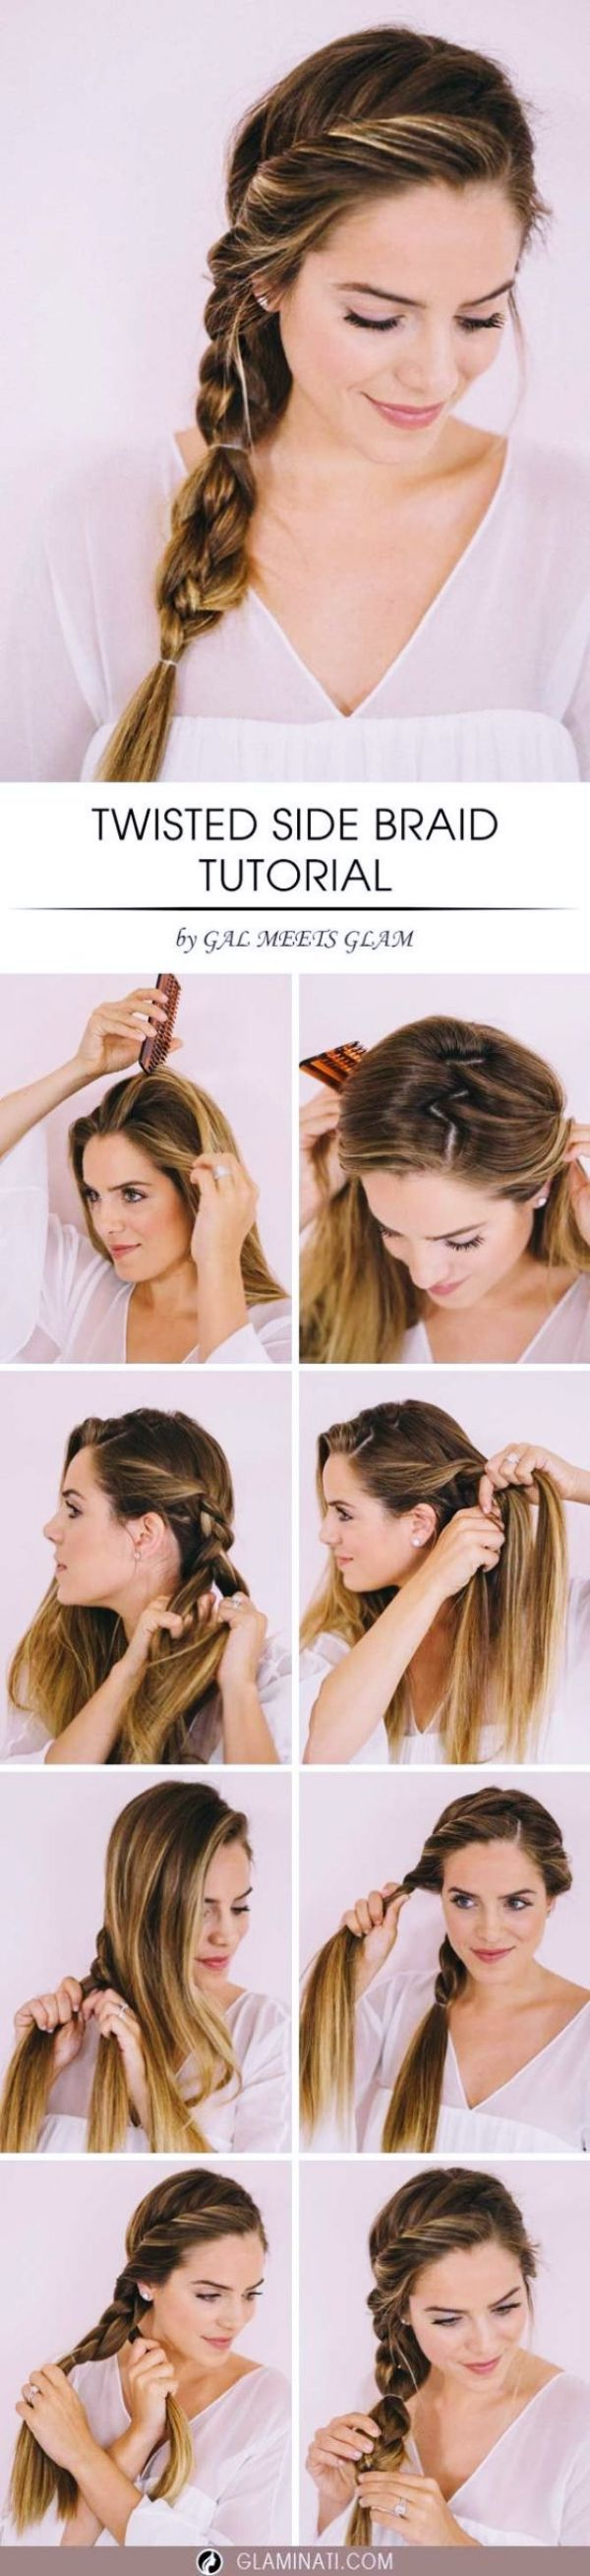 40 Quick Self Hairstyles For Working Moms Hairstyle Hairstyles Moms Quick Working Hair Styles Long Hair Girl Long Hair Styles